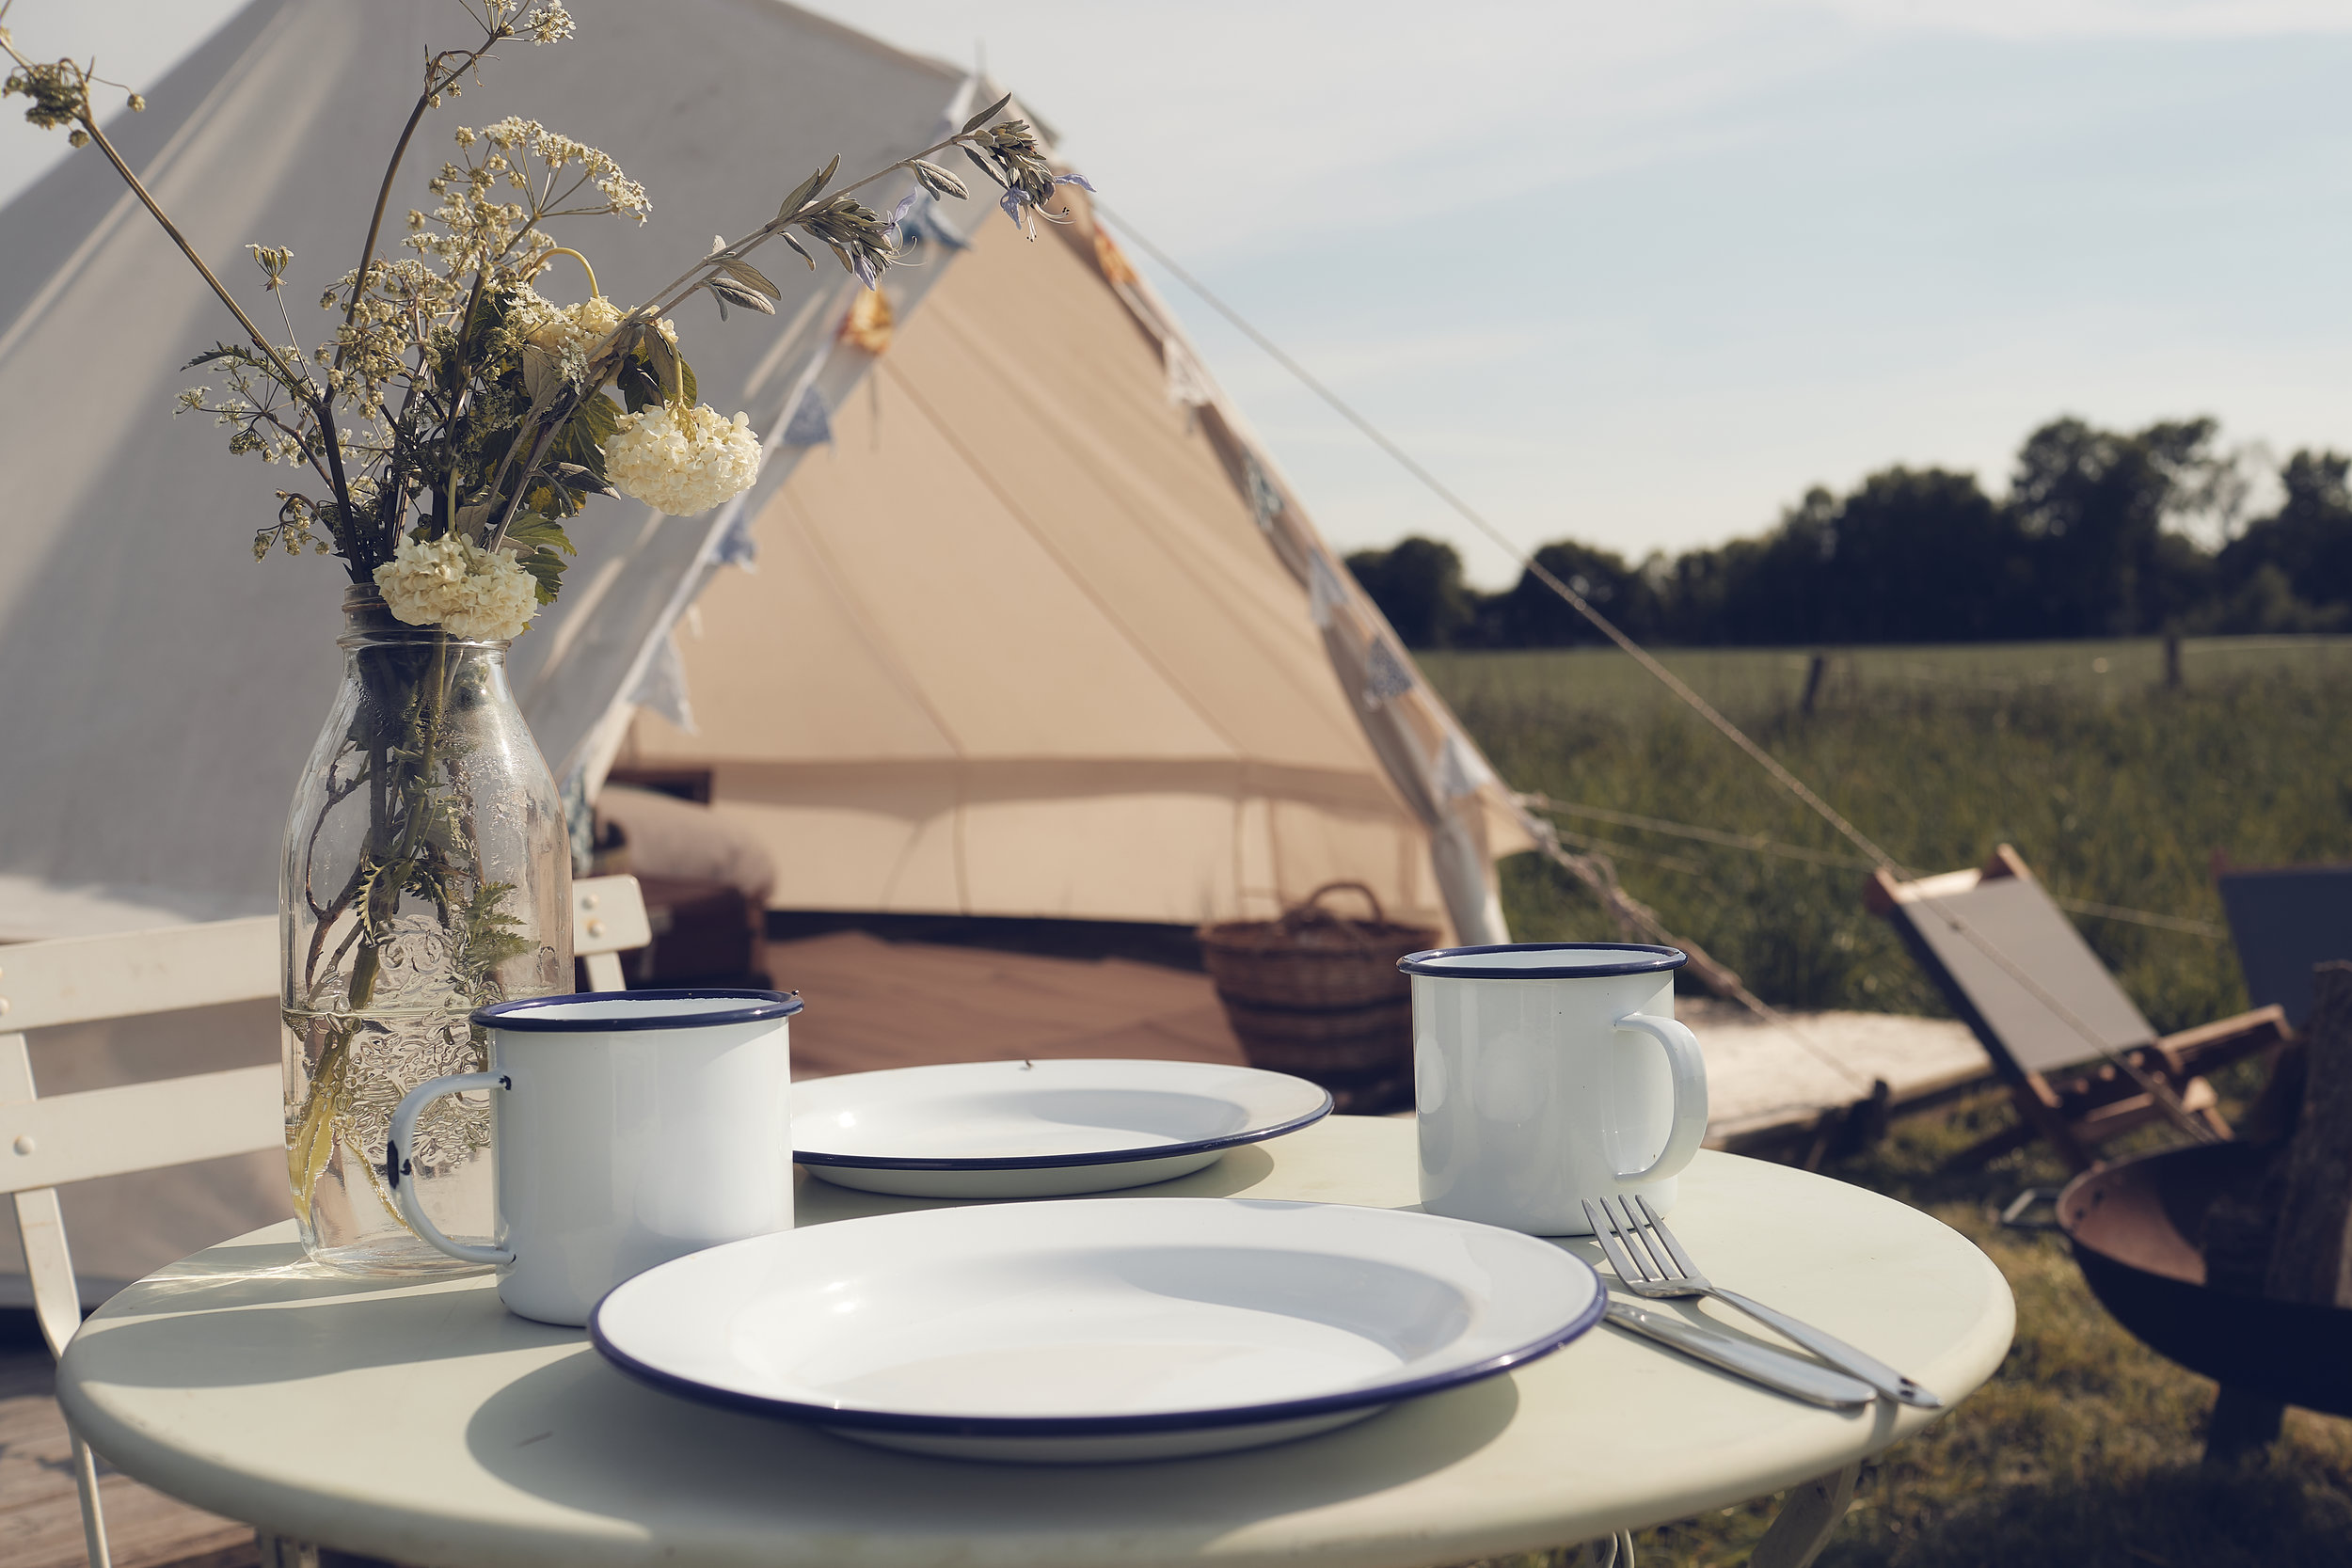 Glamping near london plates